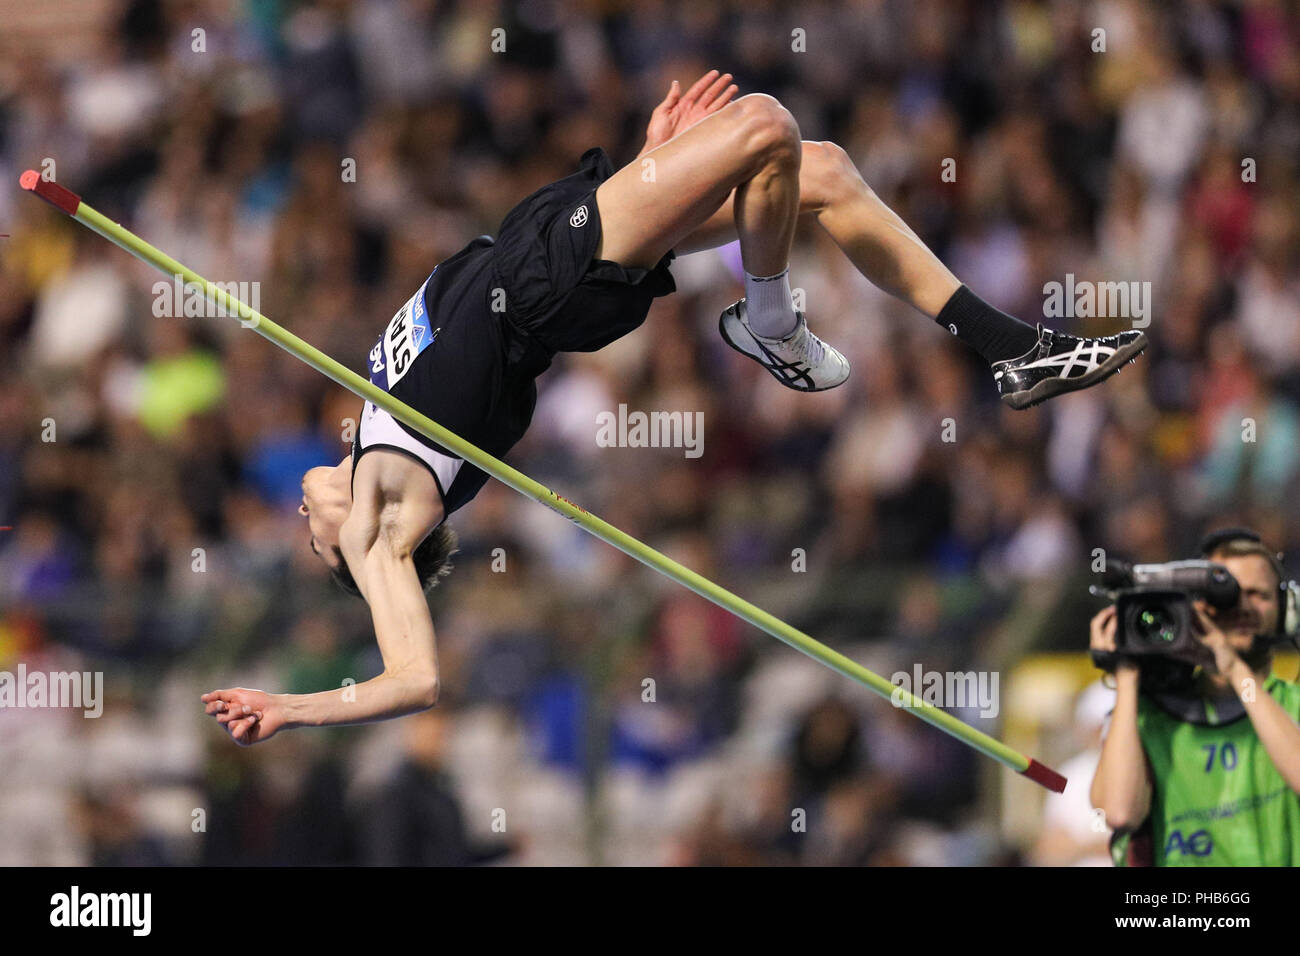 Brussels, Belgium. 31st Aug, 2018. Brandon Starc of Australia competes during the men's high jump event at the IAAF Diamond League athletics meeting in Brussels, Belgium, Aug. 31, 2018. Brandon Starc claimed the title with 2.33 meters. Credit: Zheng Huansong/Xinhua/Alamy Live News - Stock Image